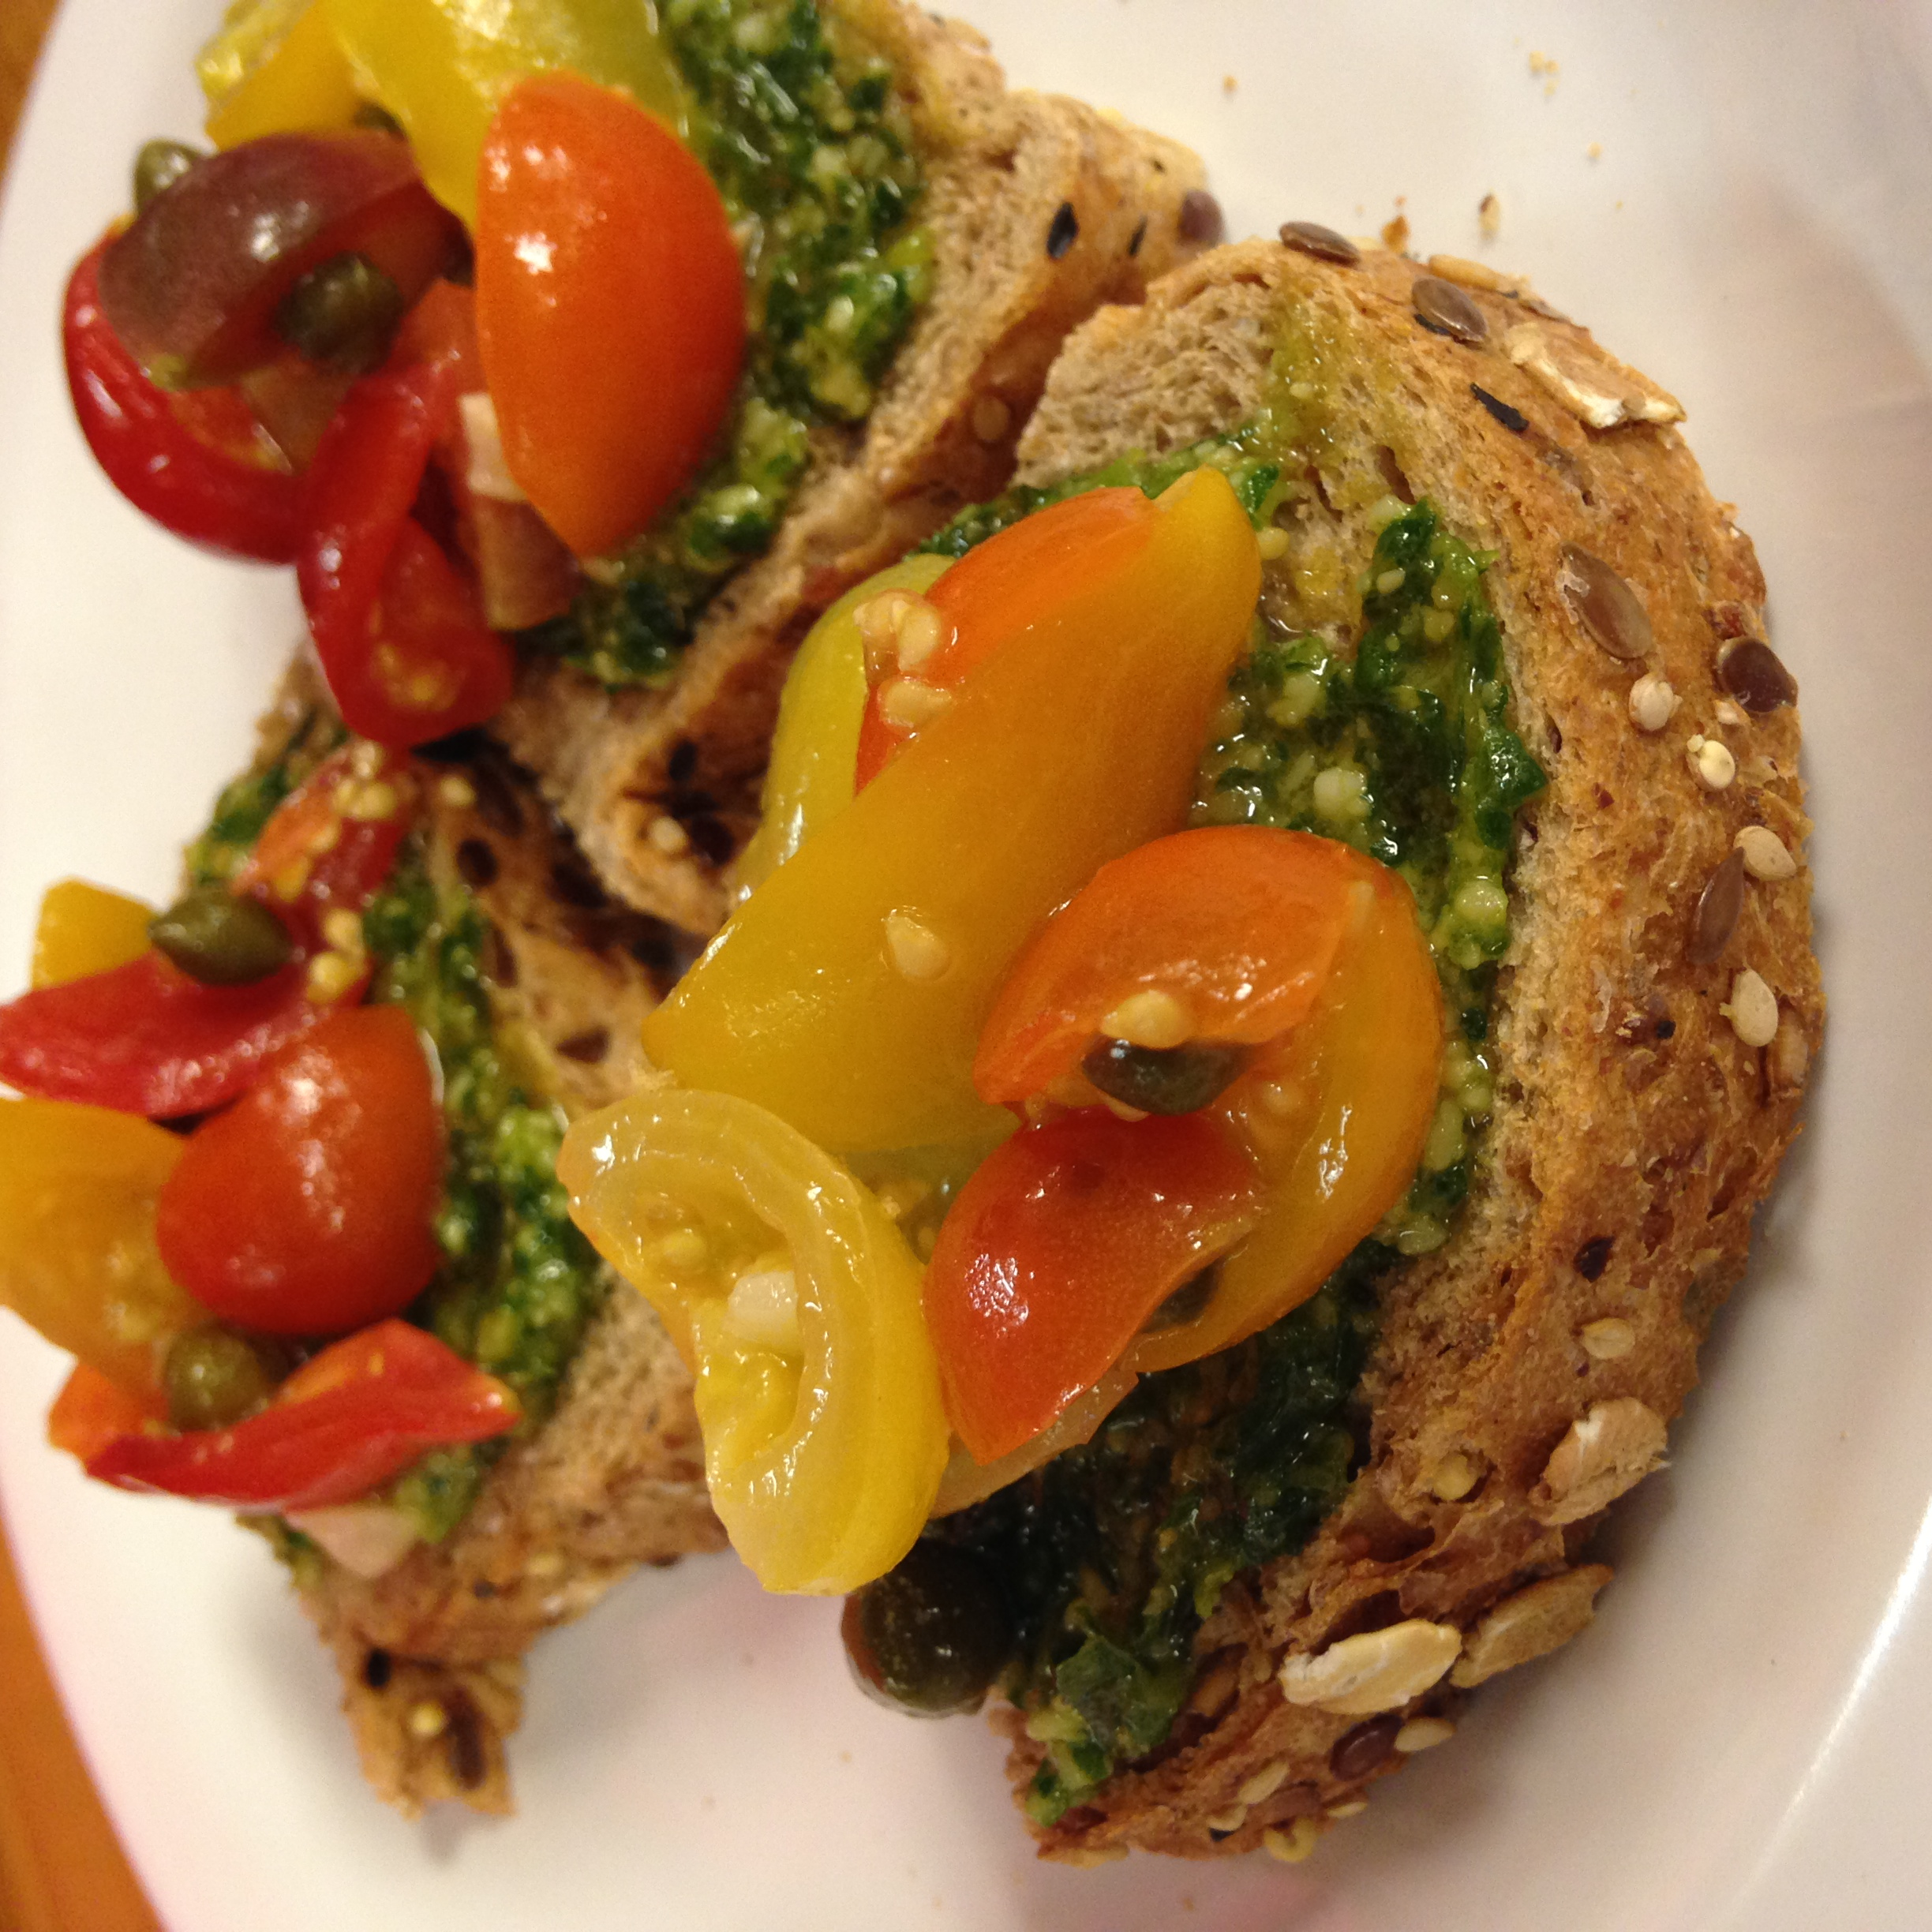 Our Killer Cafe chefs dreamed up this delectable delight! sweet tomatoes and the pesto kick are like magic in your mouth!